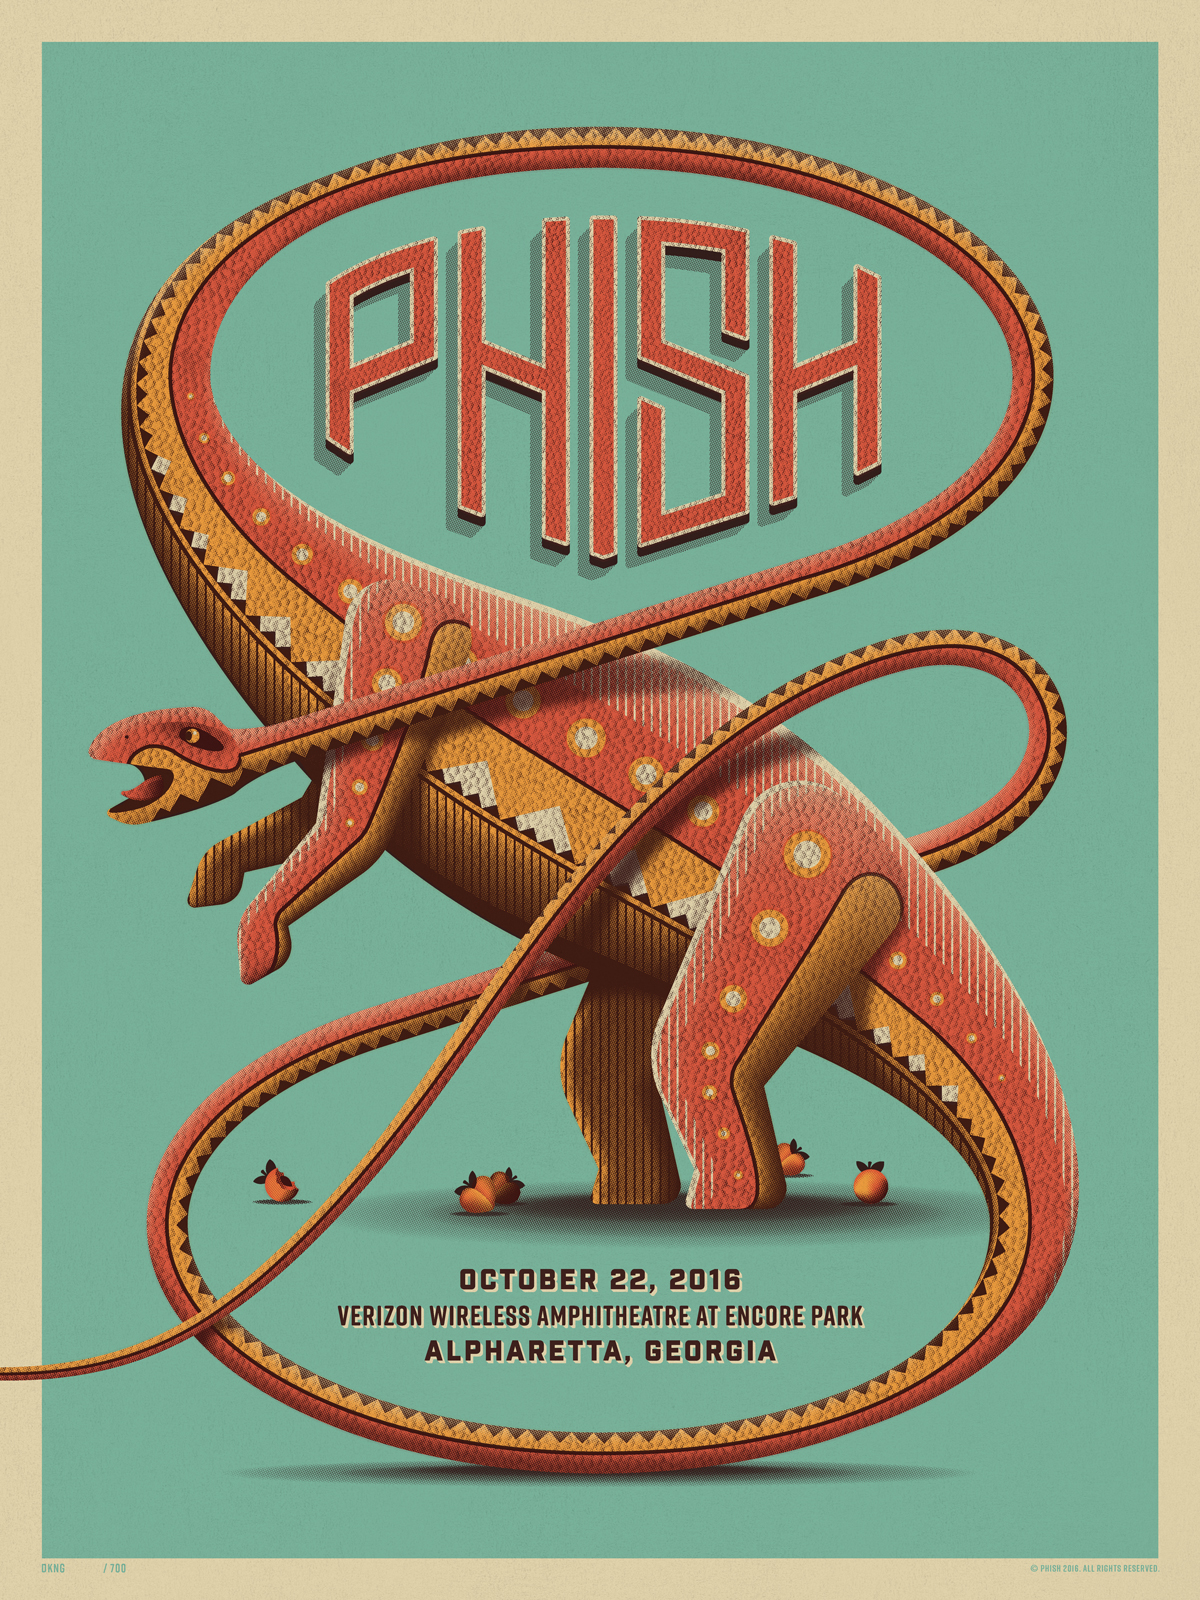 Phish Alpharetta, GA Posters by DKNG